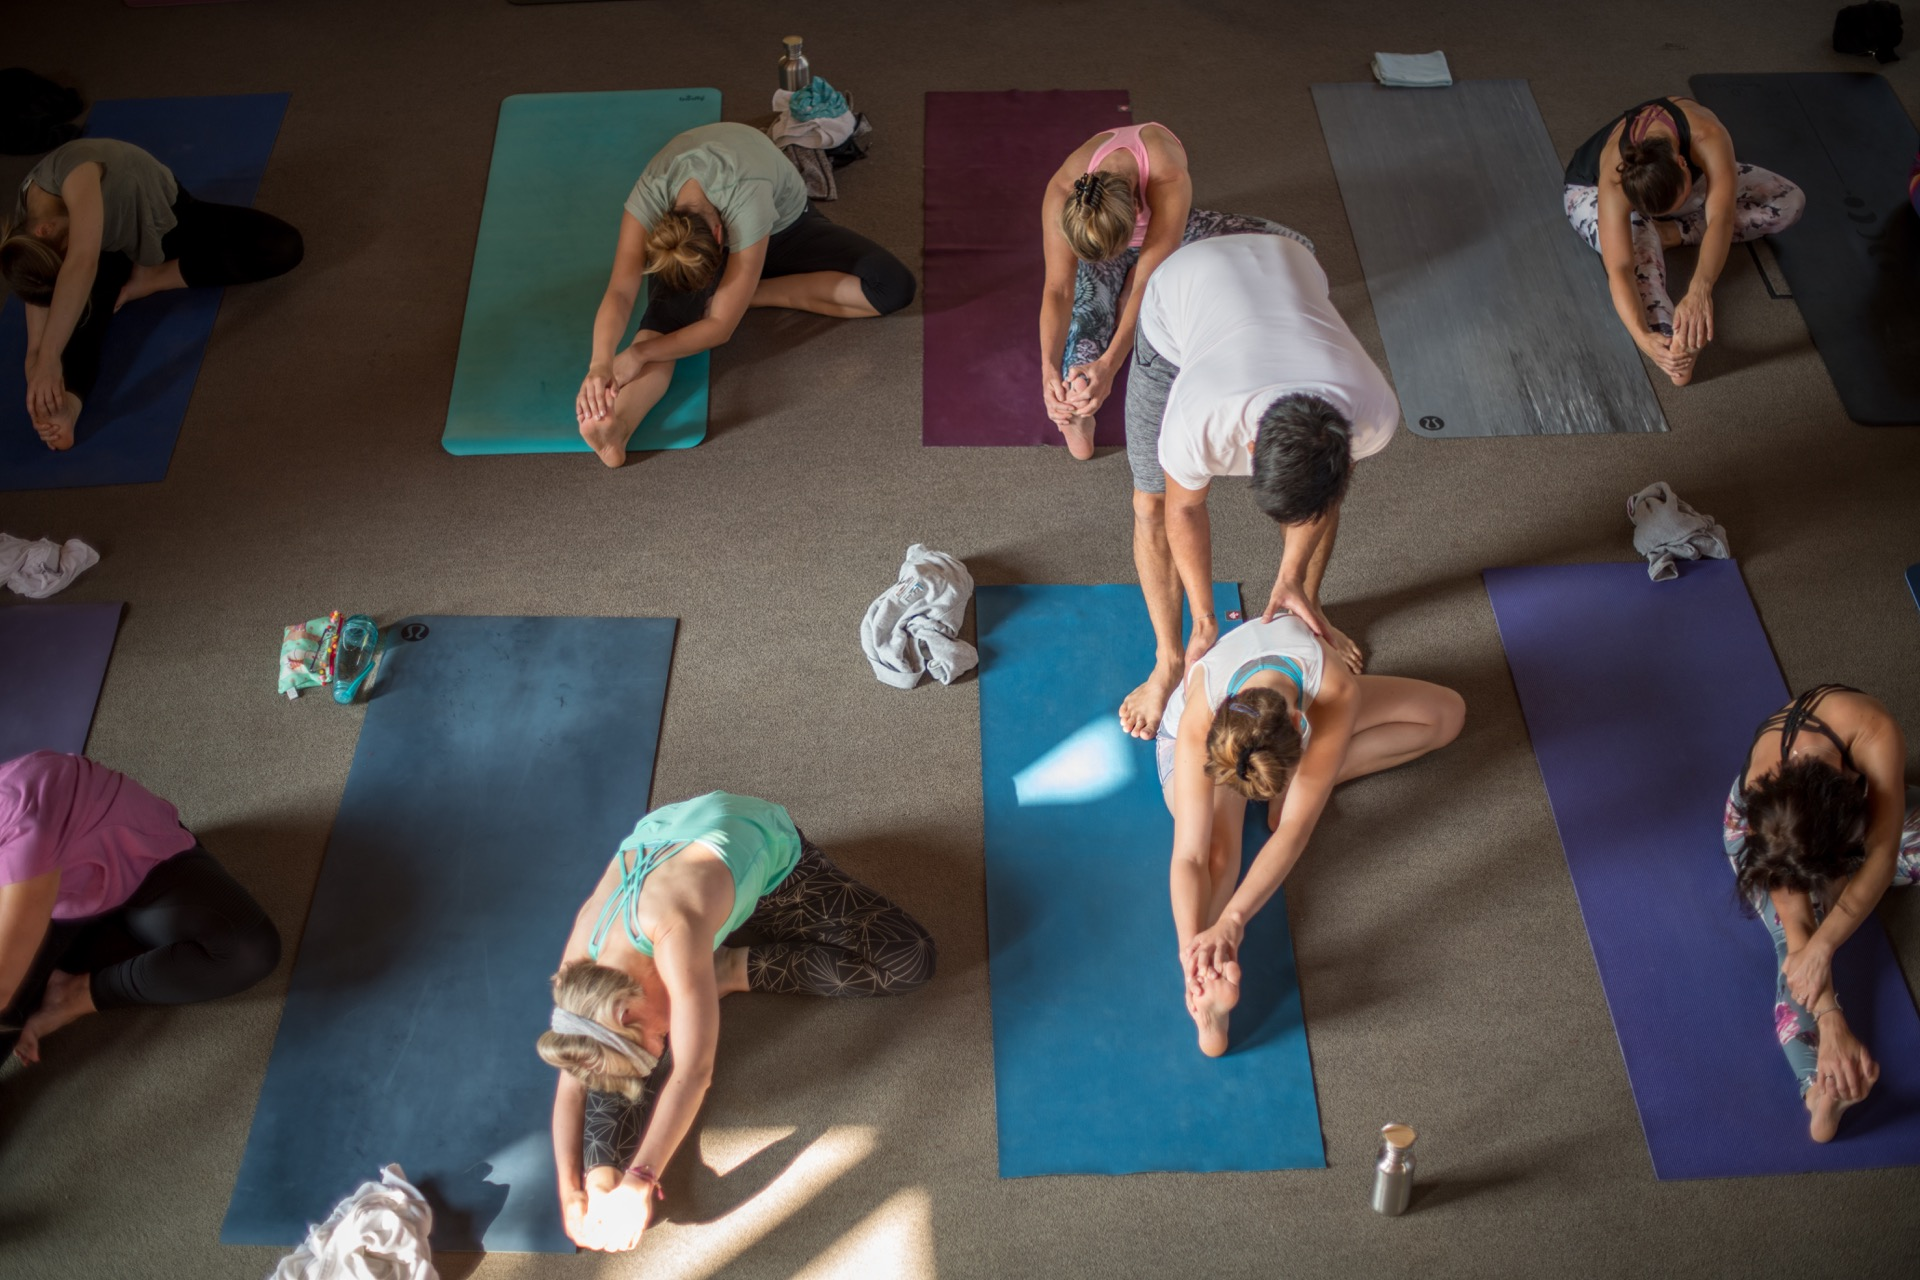 Hie-Kim-Friends-2019-Yoga-Retreat-Alina-Matis-Photography-039 - Hie Kim Yoga - Yoga Retreat - Yoga Workshops und Reisen